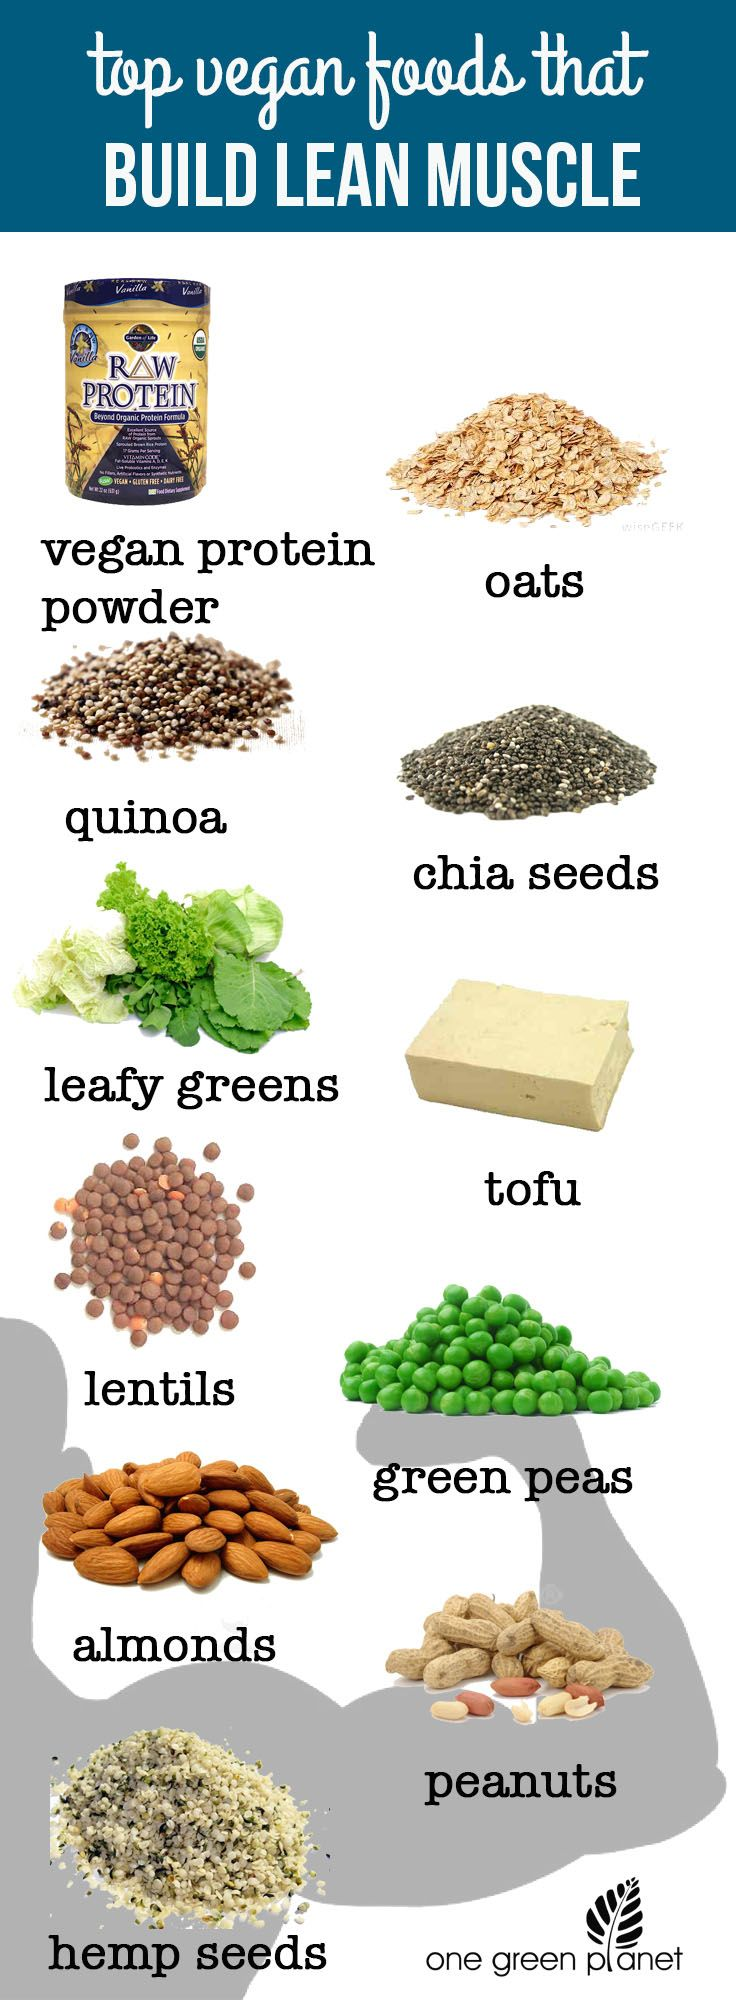 Use this one simple trick to build muscle quick Top Vegan Foods That Build Lean Muscle onegr.pl/1rRlZJO #vegan #plantpowered #plantstrong